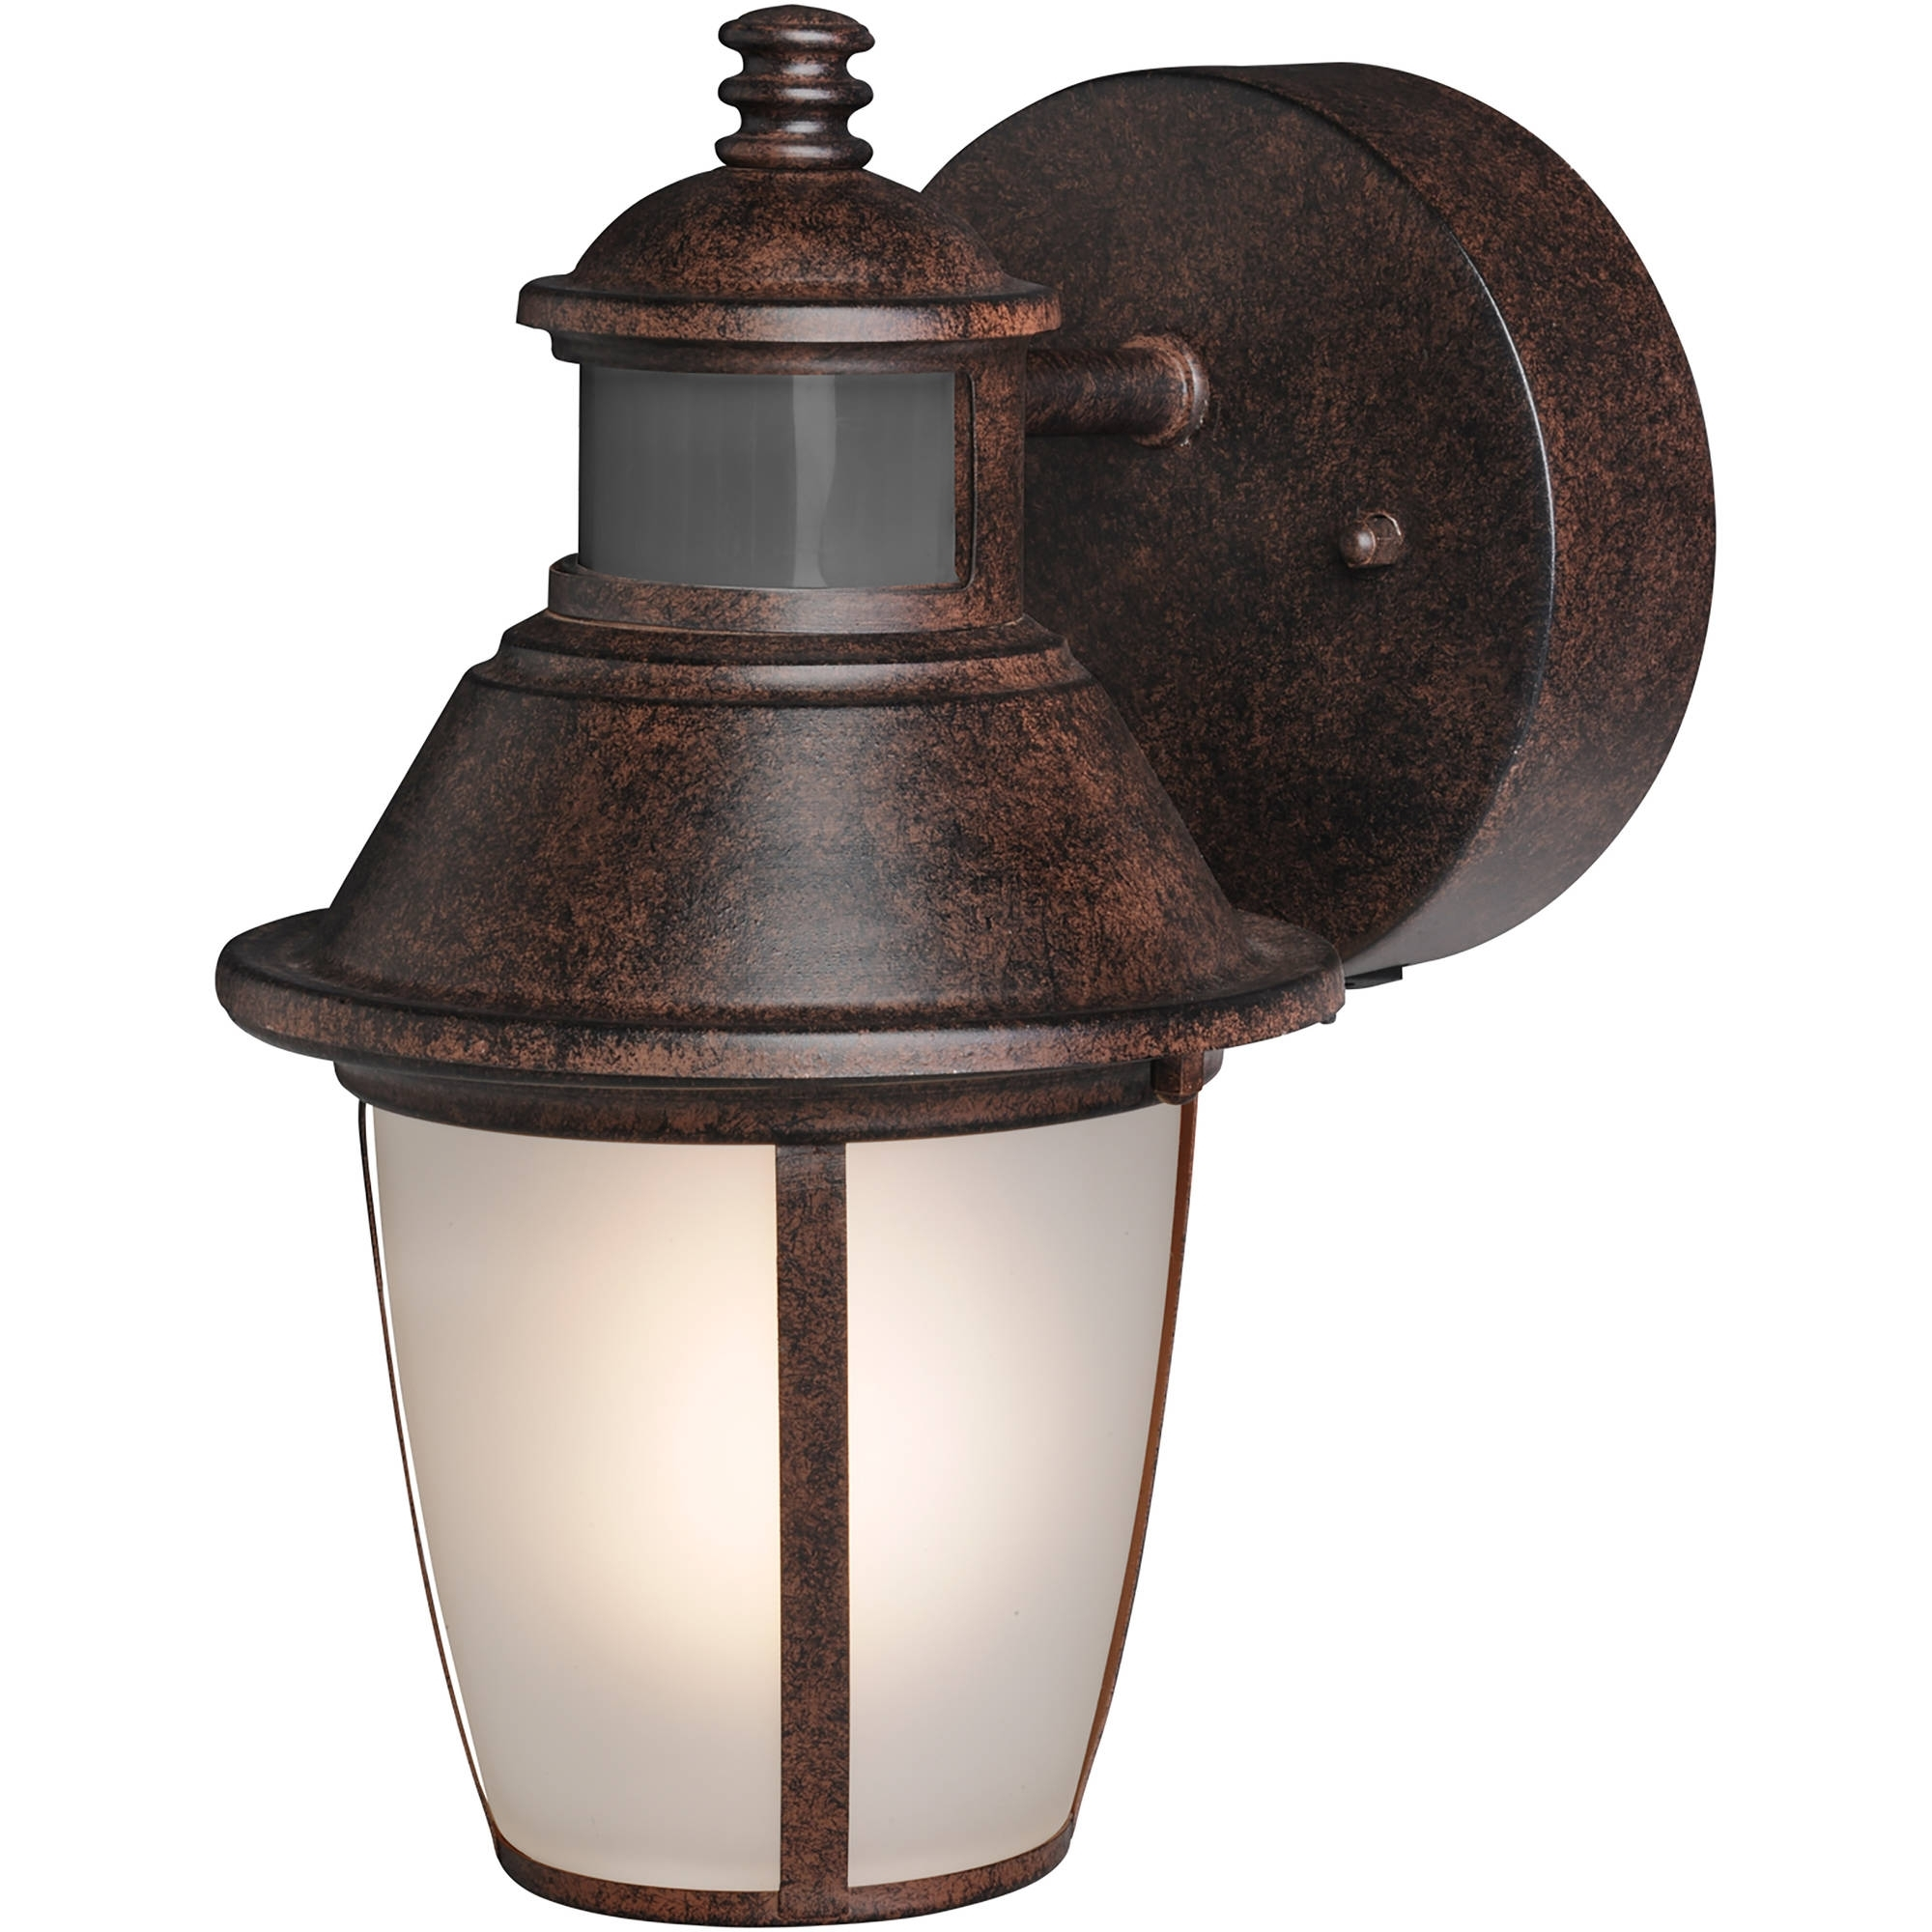 Brink's Led Outdoor Wall Lantern Motion Security Light, Bronze With Most Recent Dusk To Dawn Led Outdoor Wall Lights (View 20 of 20)